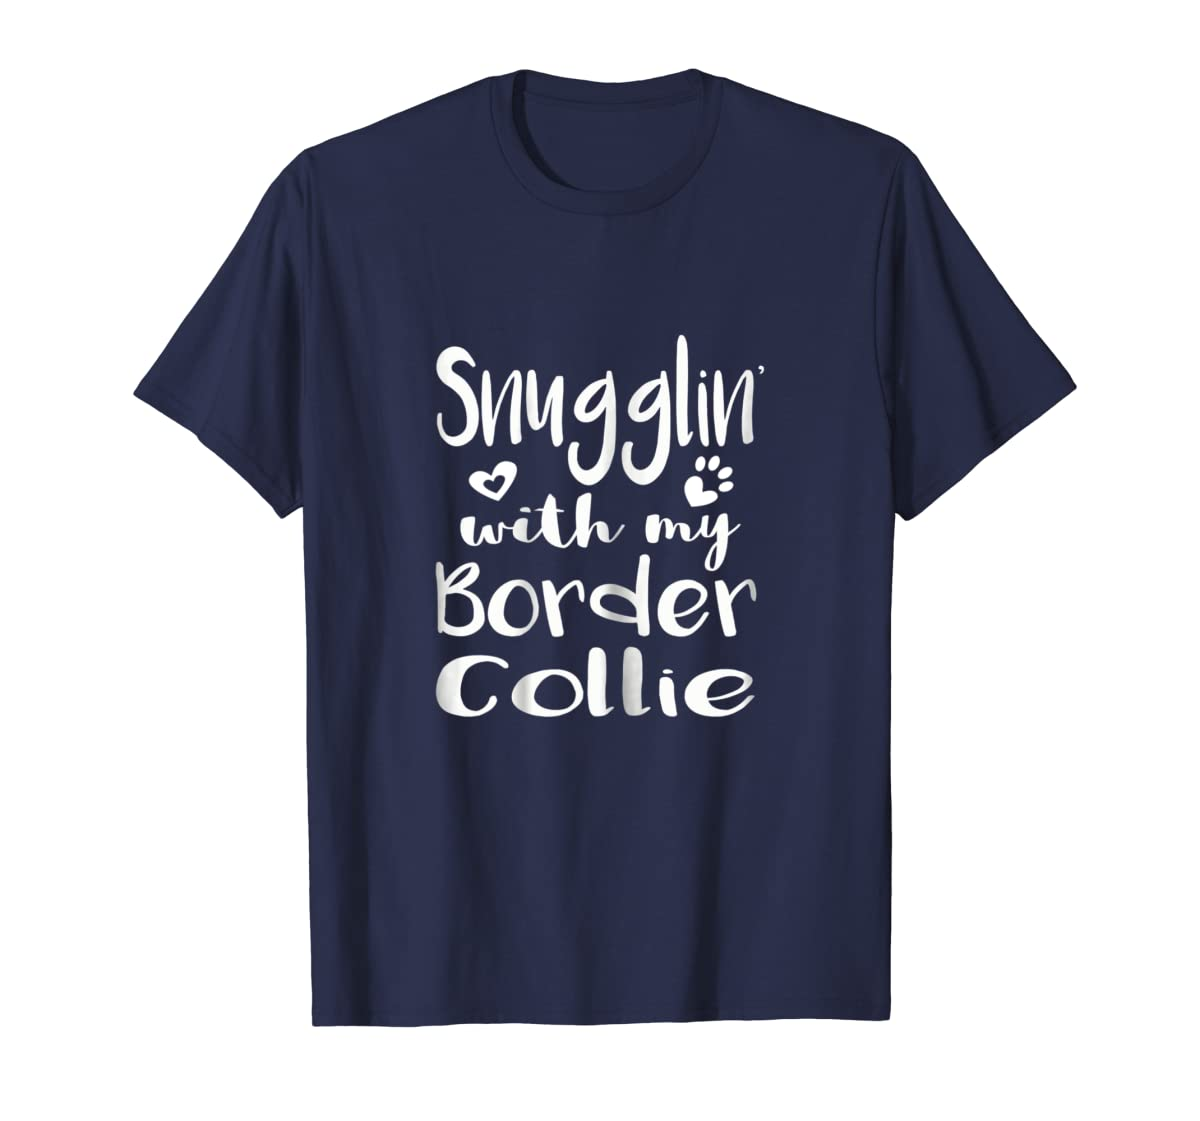 Snuggling with my Border Collie Shirt - Dog Mom pajamas-Men's T-Shirt-Navy